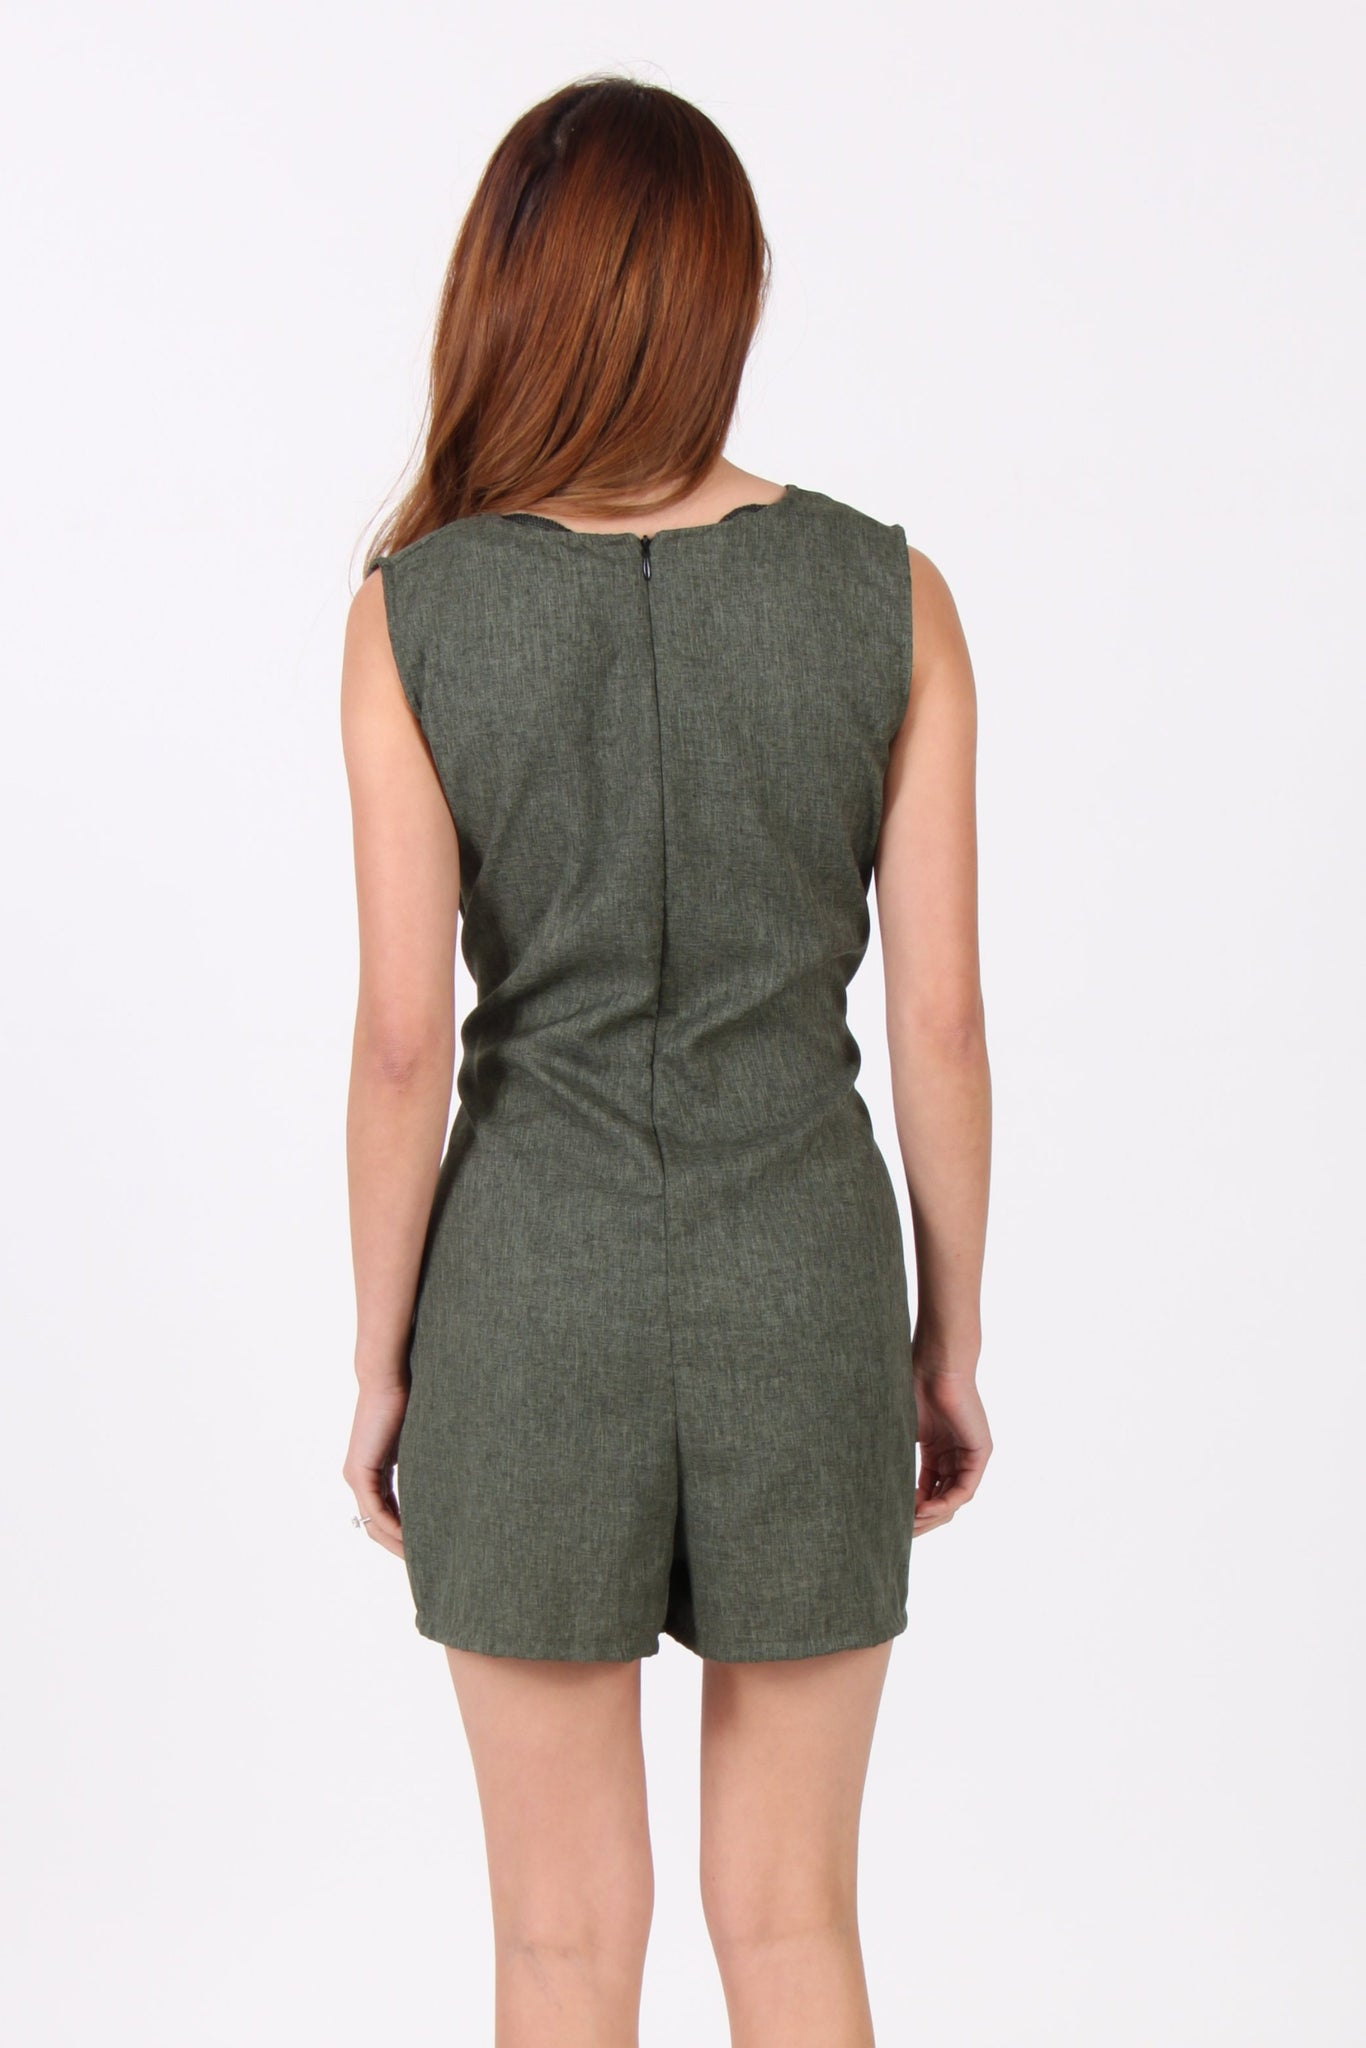 Sleeveless Octopus Romper in Seaweed Green